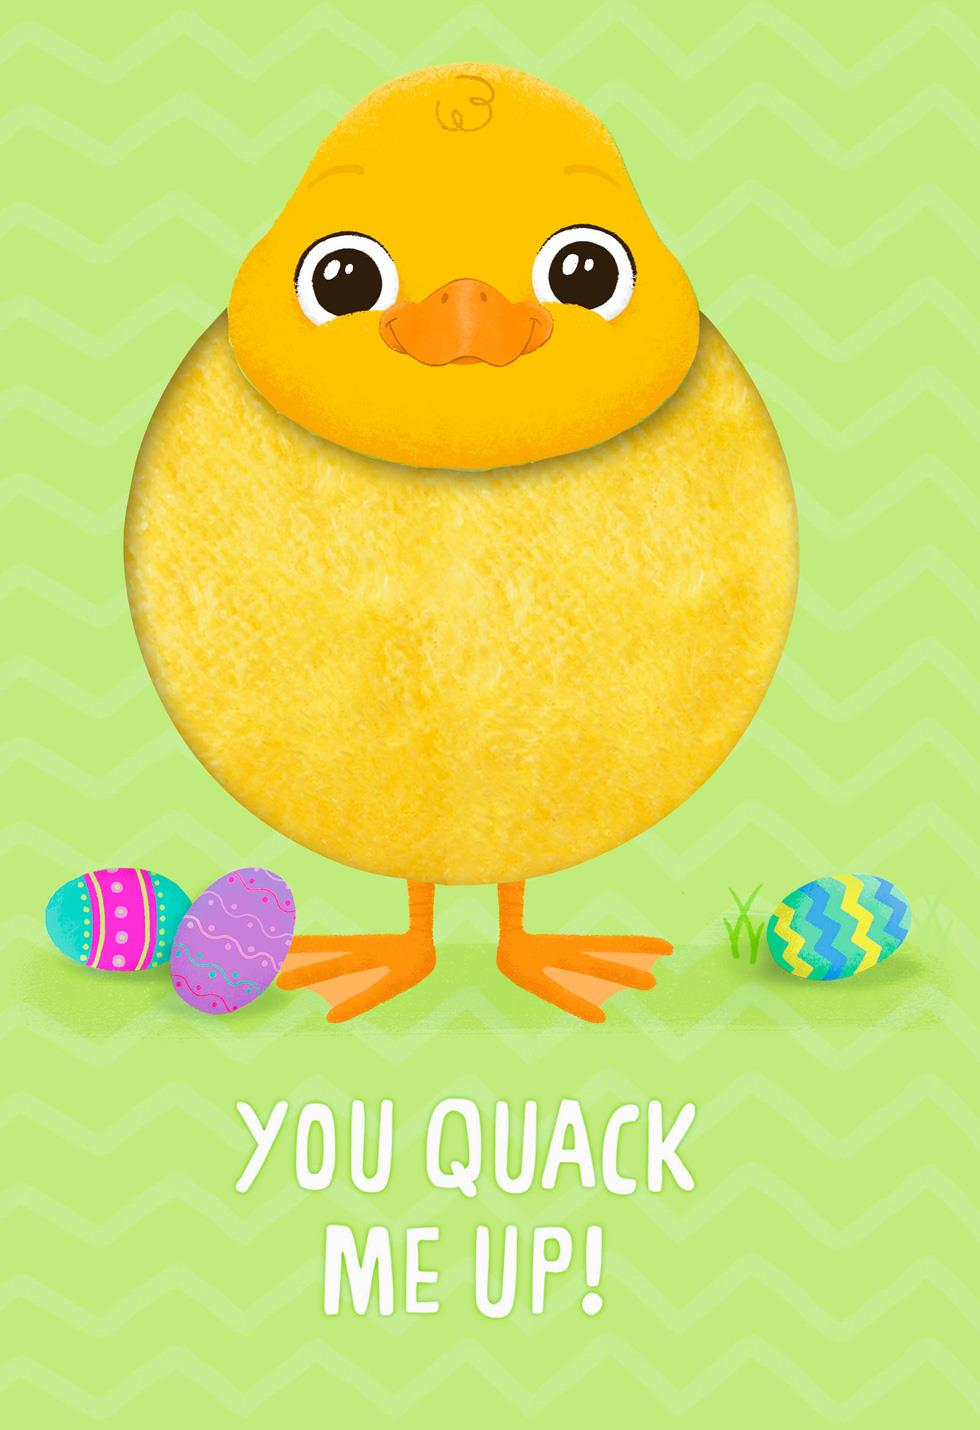 Fuzzy Duckling Quack Me Up Easter Card For Kids Greeting Cards